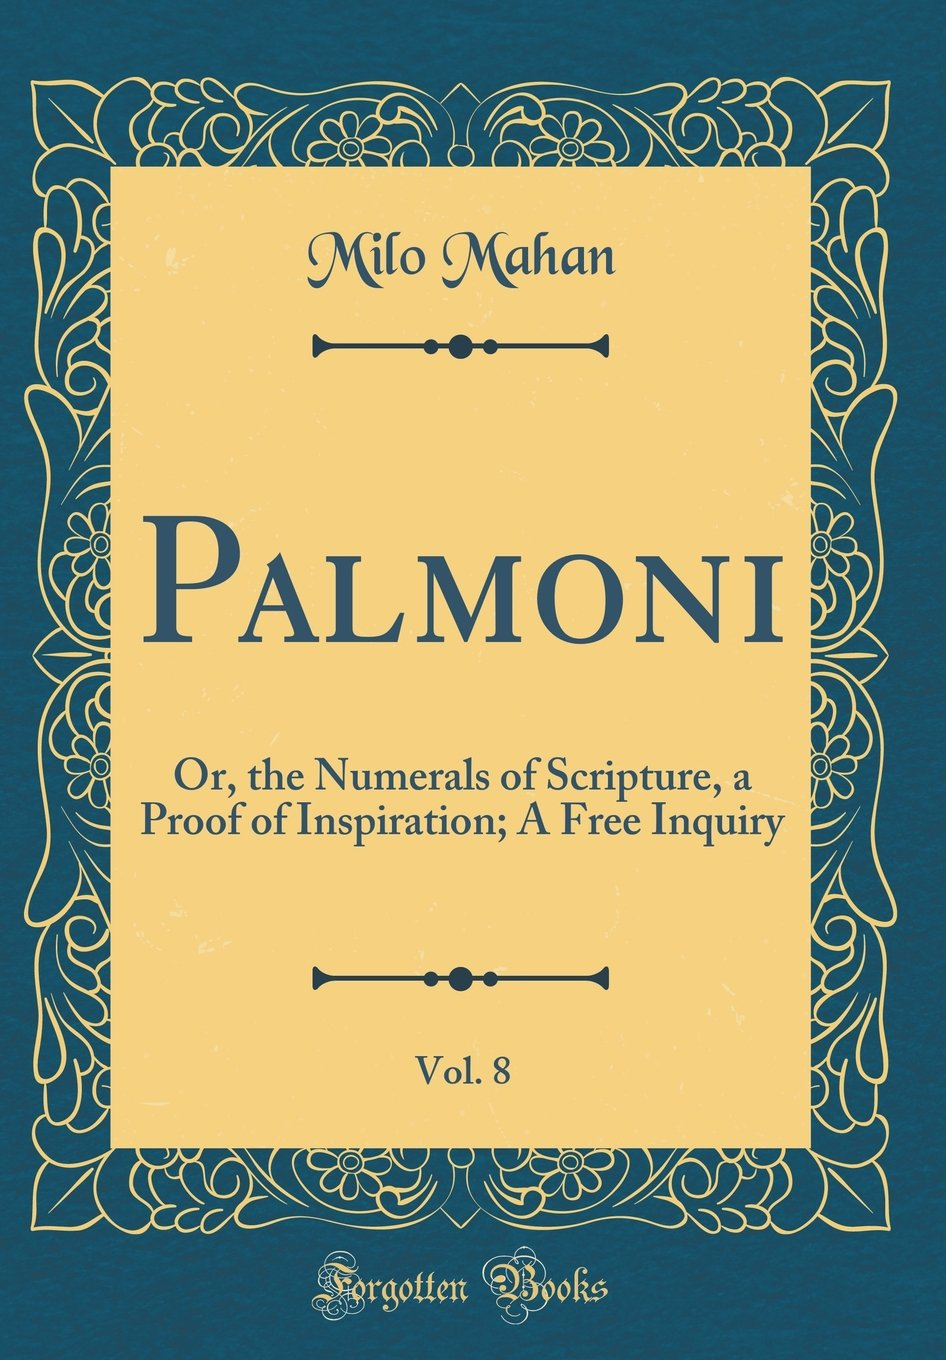 Palmoni, Vol. 8: Or, the Numerals of Scripture, a Proof of Inspiration; A Free Inquiry (Classic Reprint) pdf